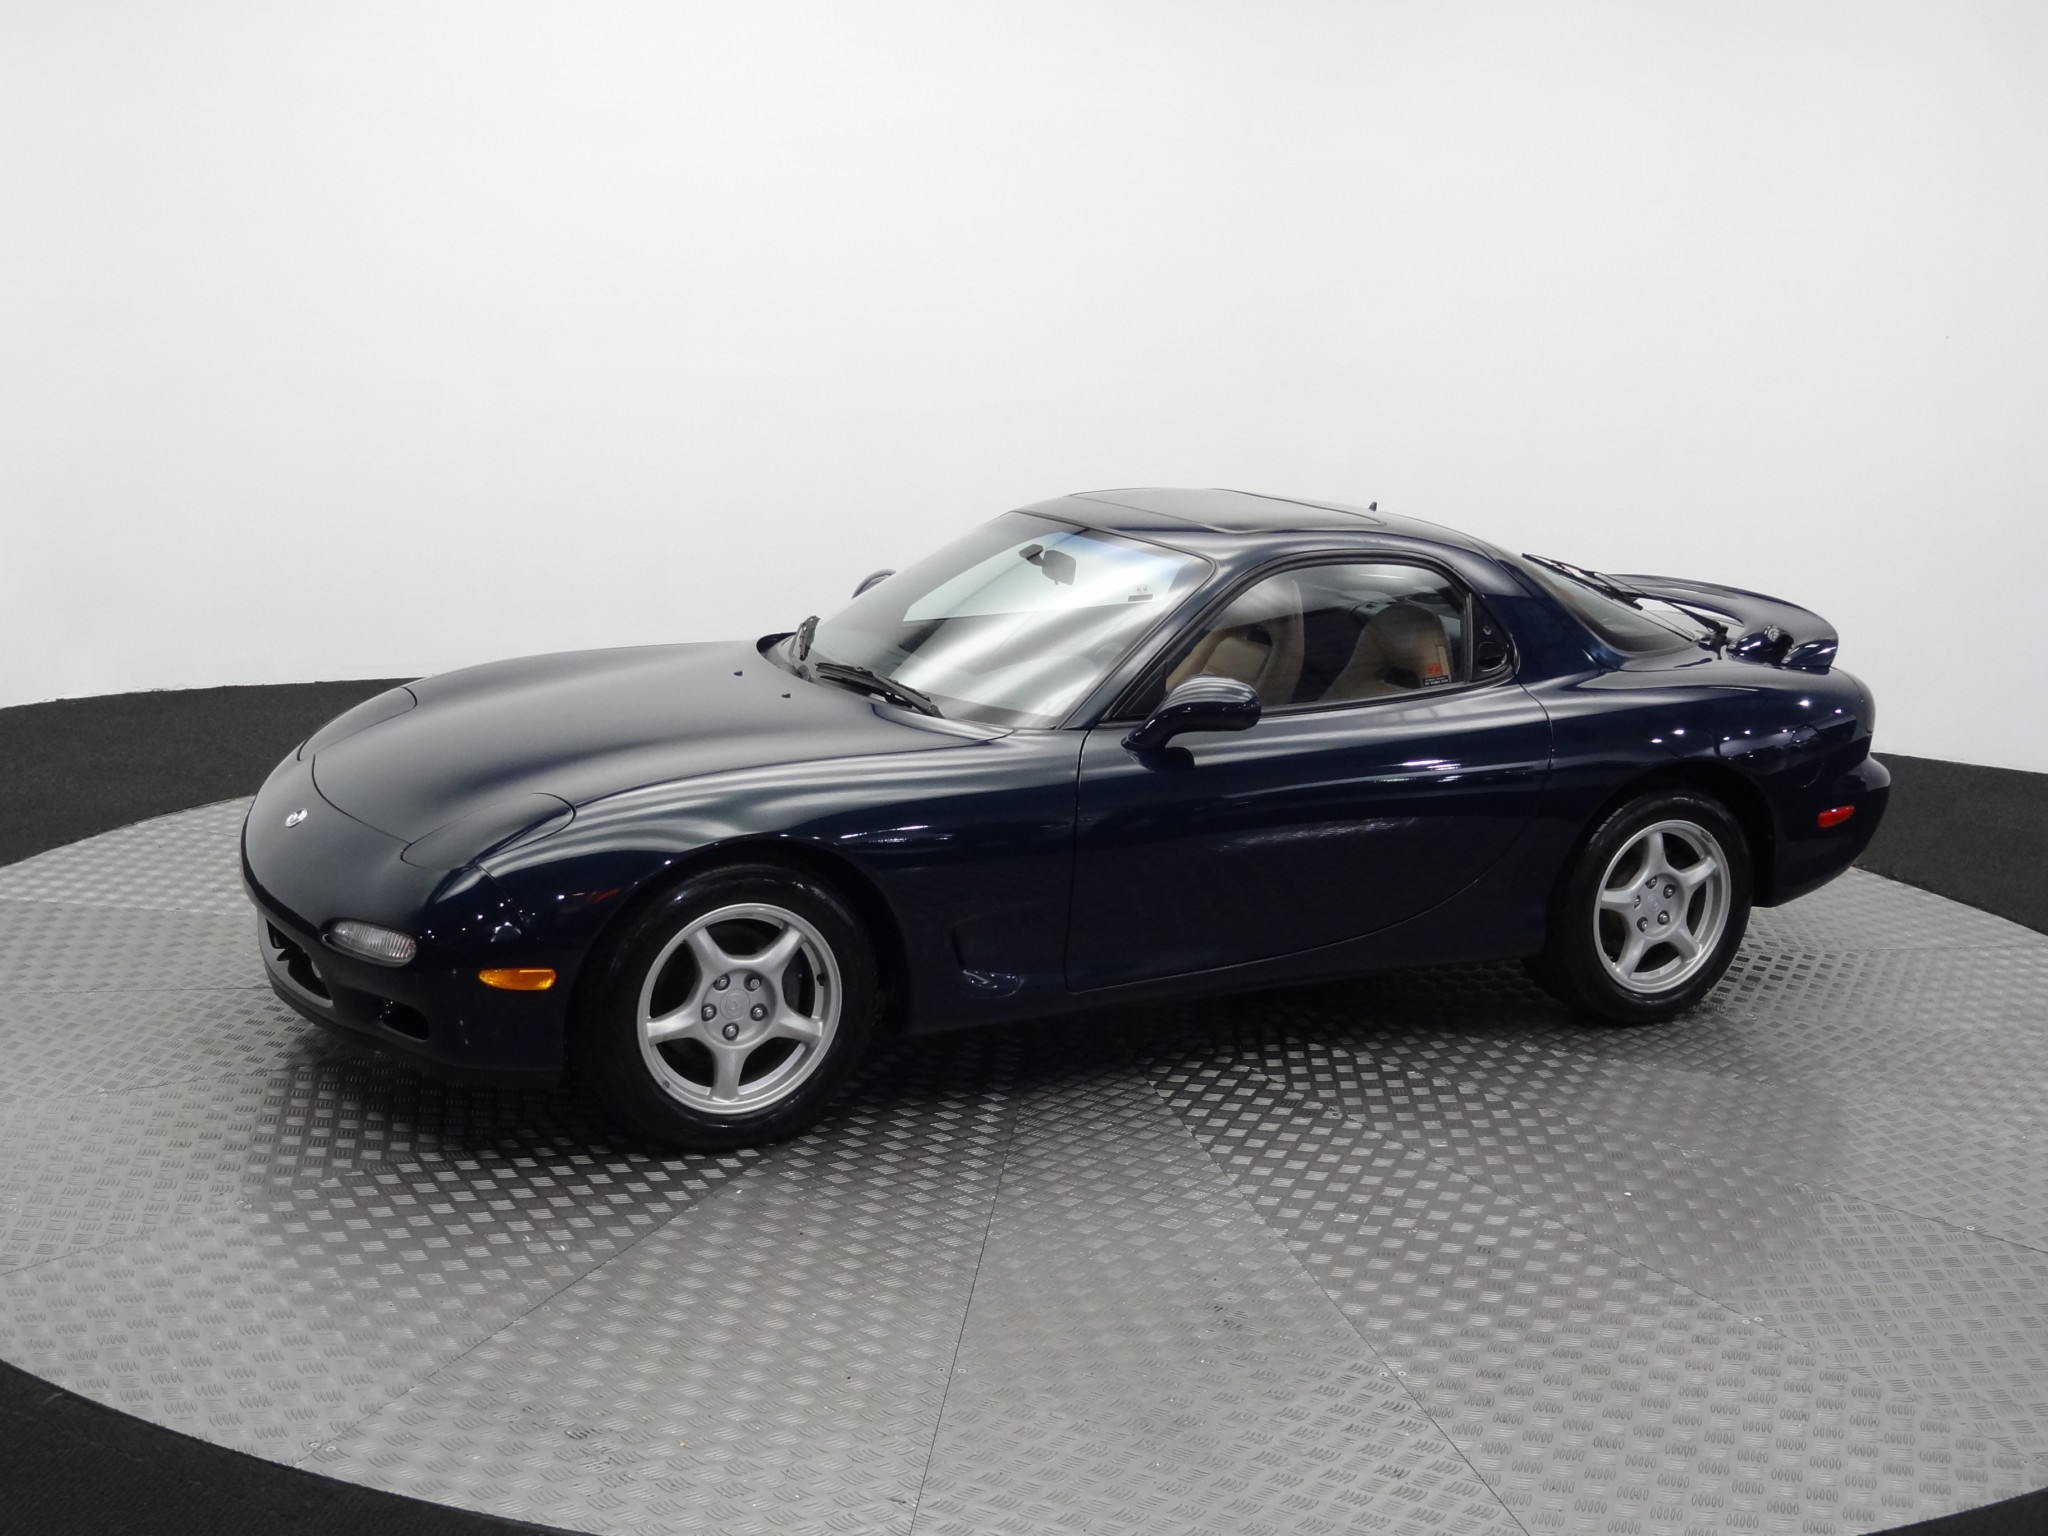 This gorgeous 1994 Mazda RX-7 FD Touring just sold for $70,000, setting new record thumbnail